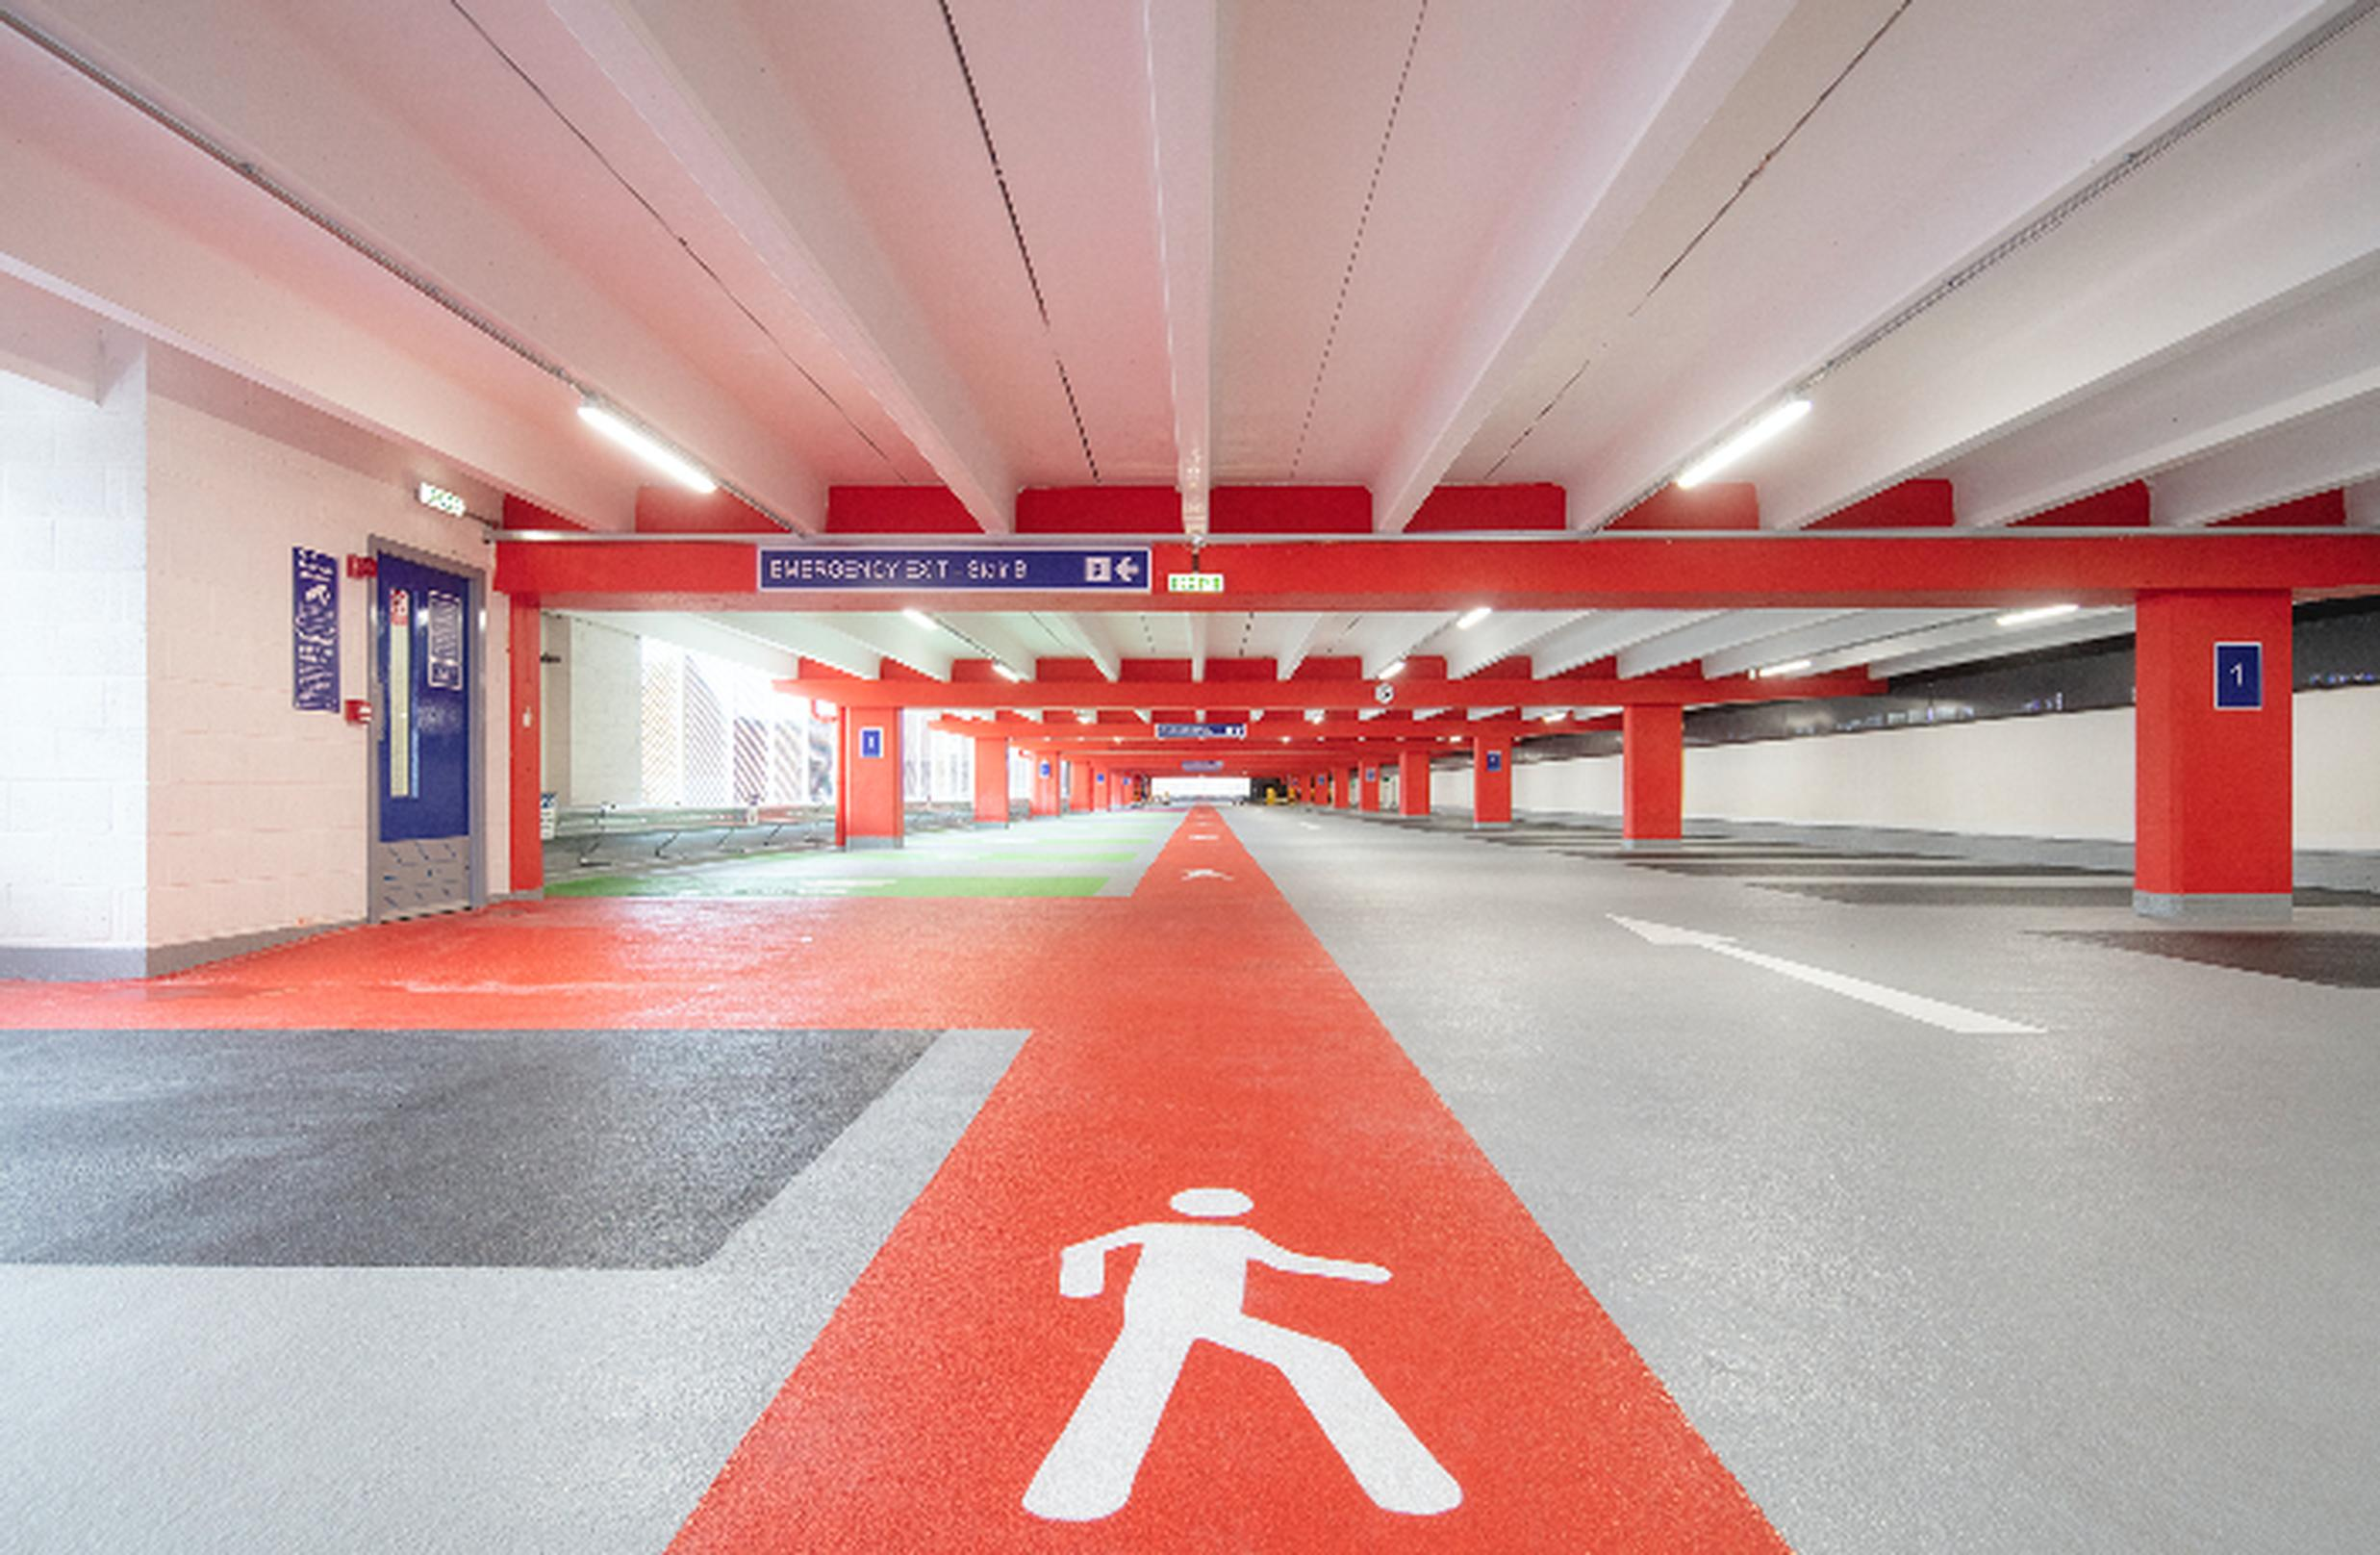 StructureCare worked on the British Parking Award winning Rotherham Interchange renewal car park